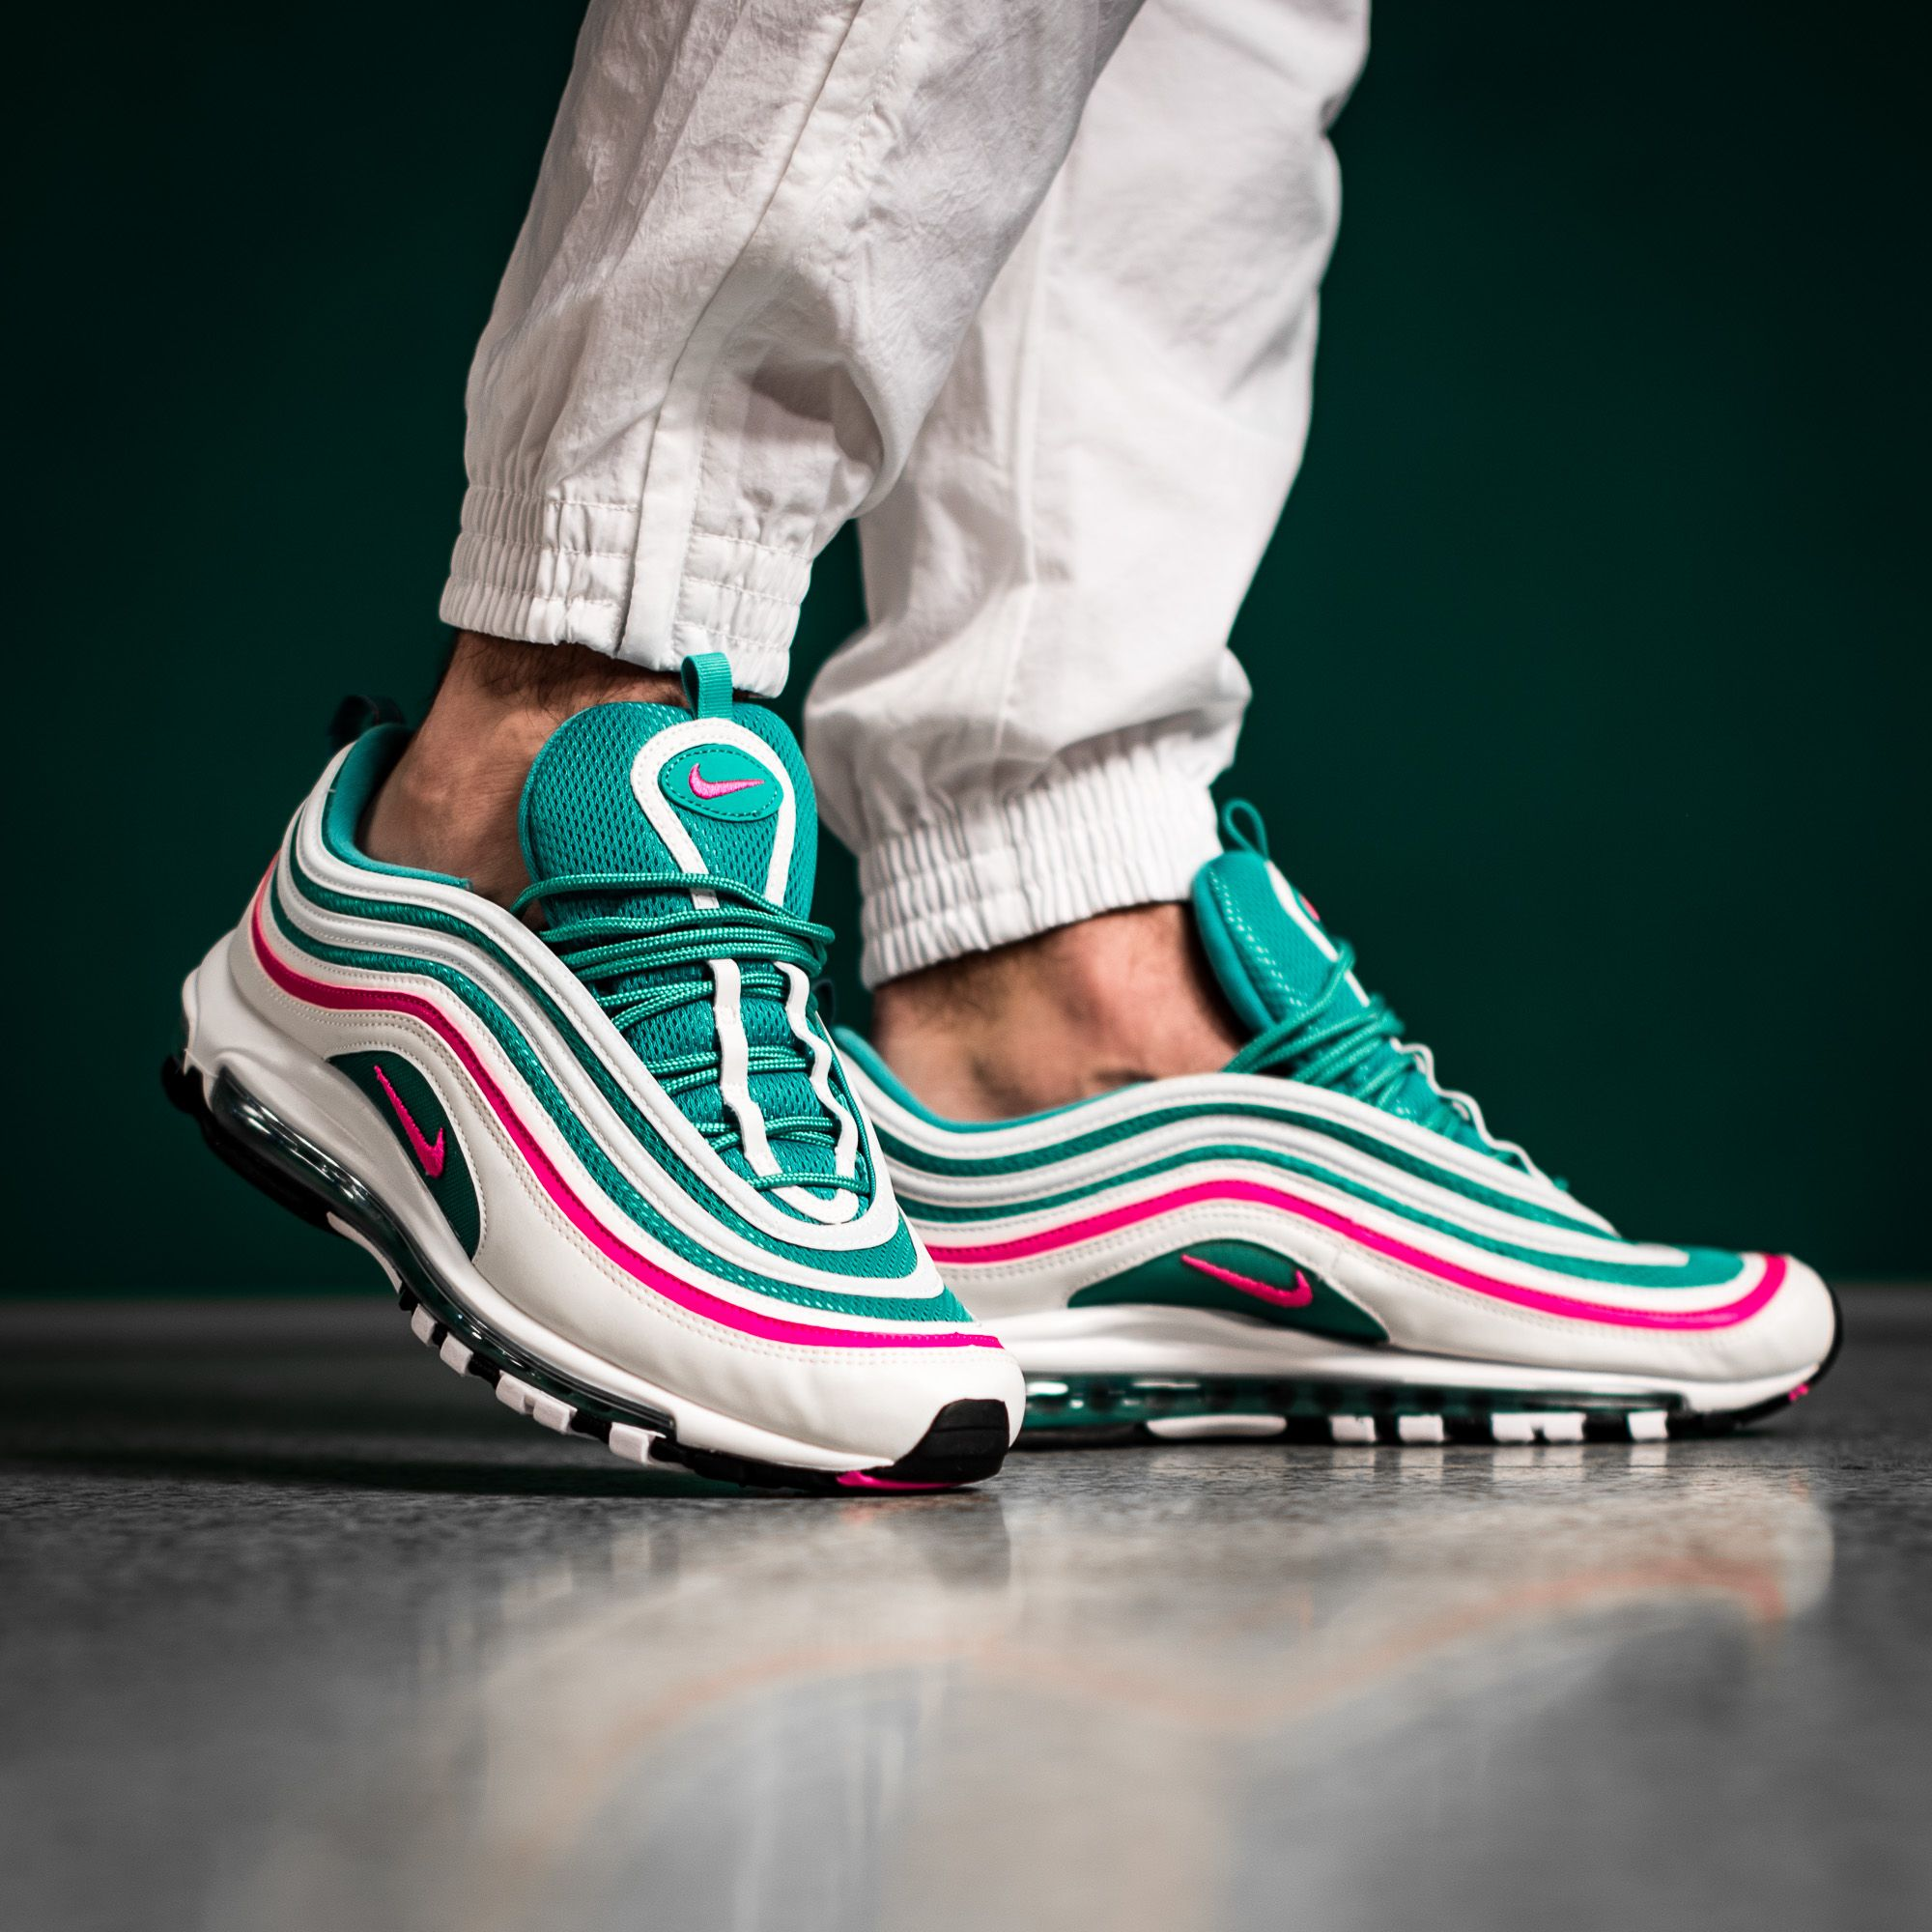 Take Your Talents To South Beach In This Nike Air Max 97 This Upcoming Southbeach Colorway Features A Flashy White Pink Gre Air Max 97 Nike Air Max Sneaker